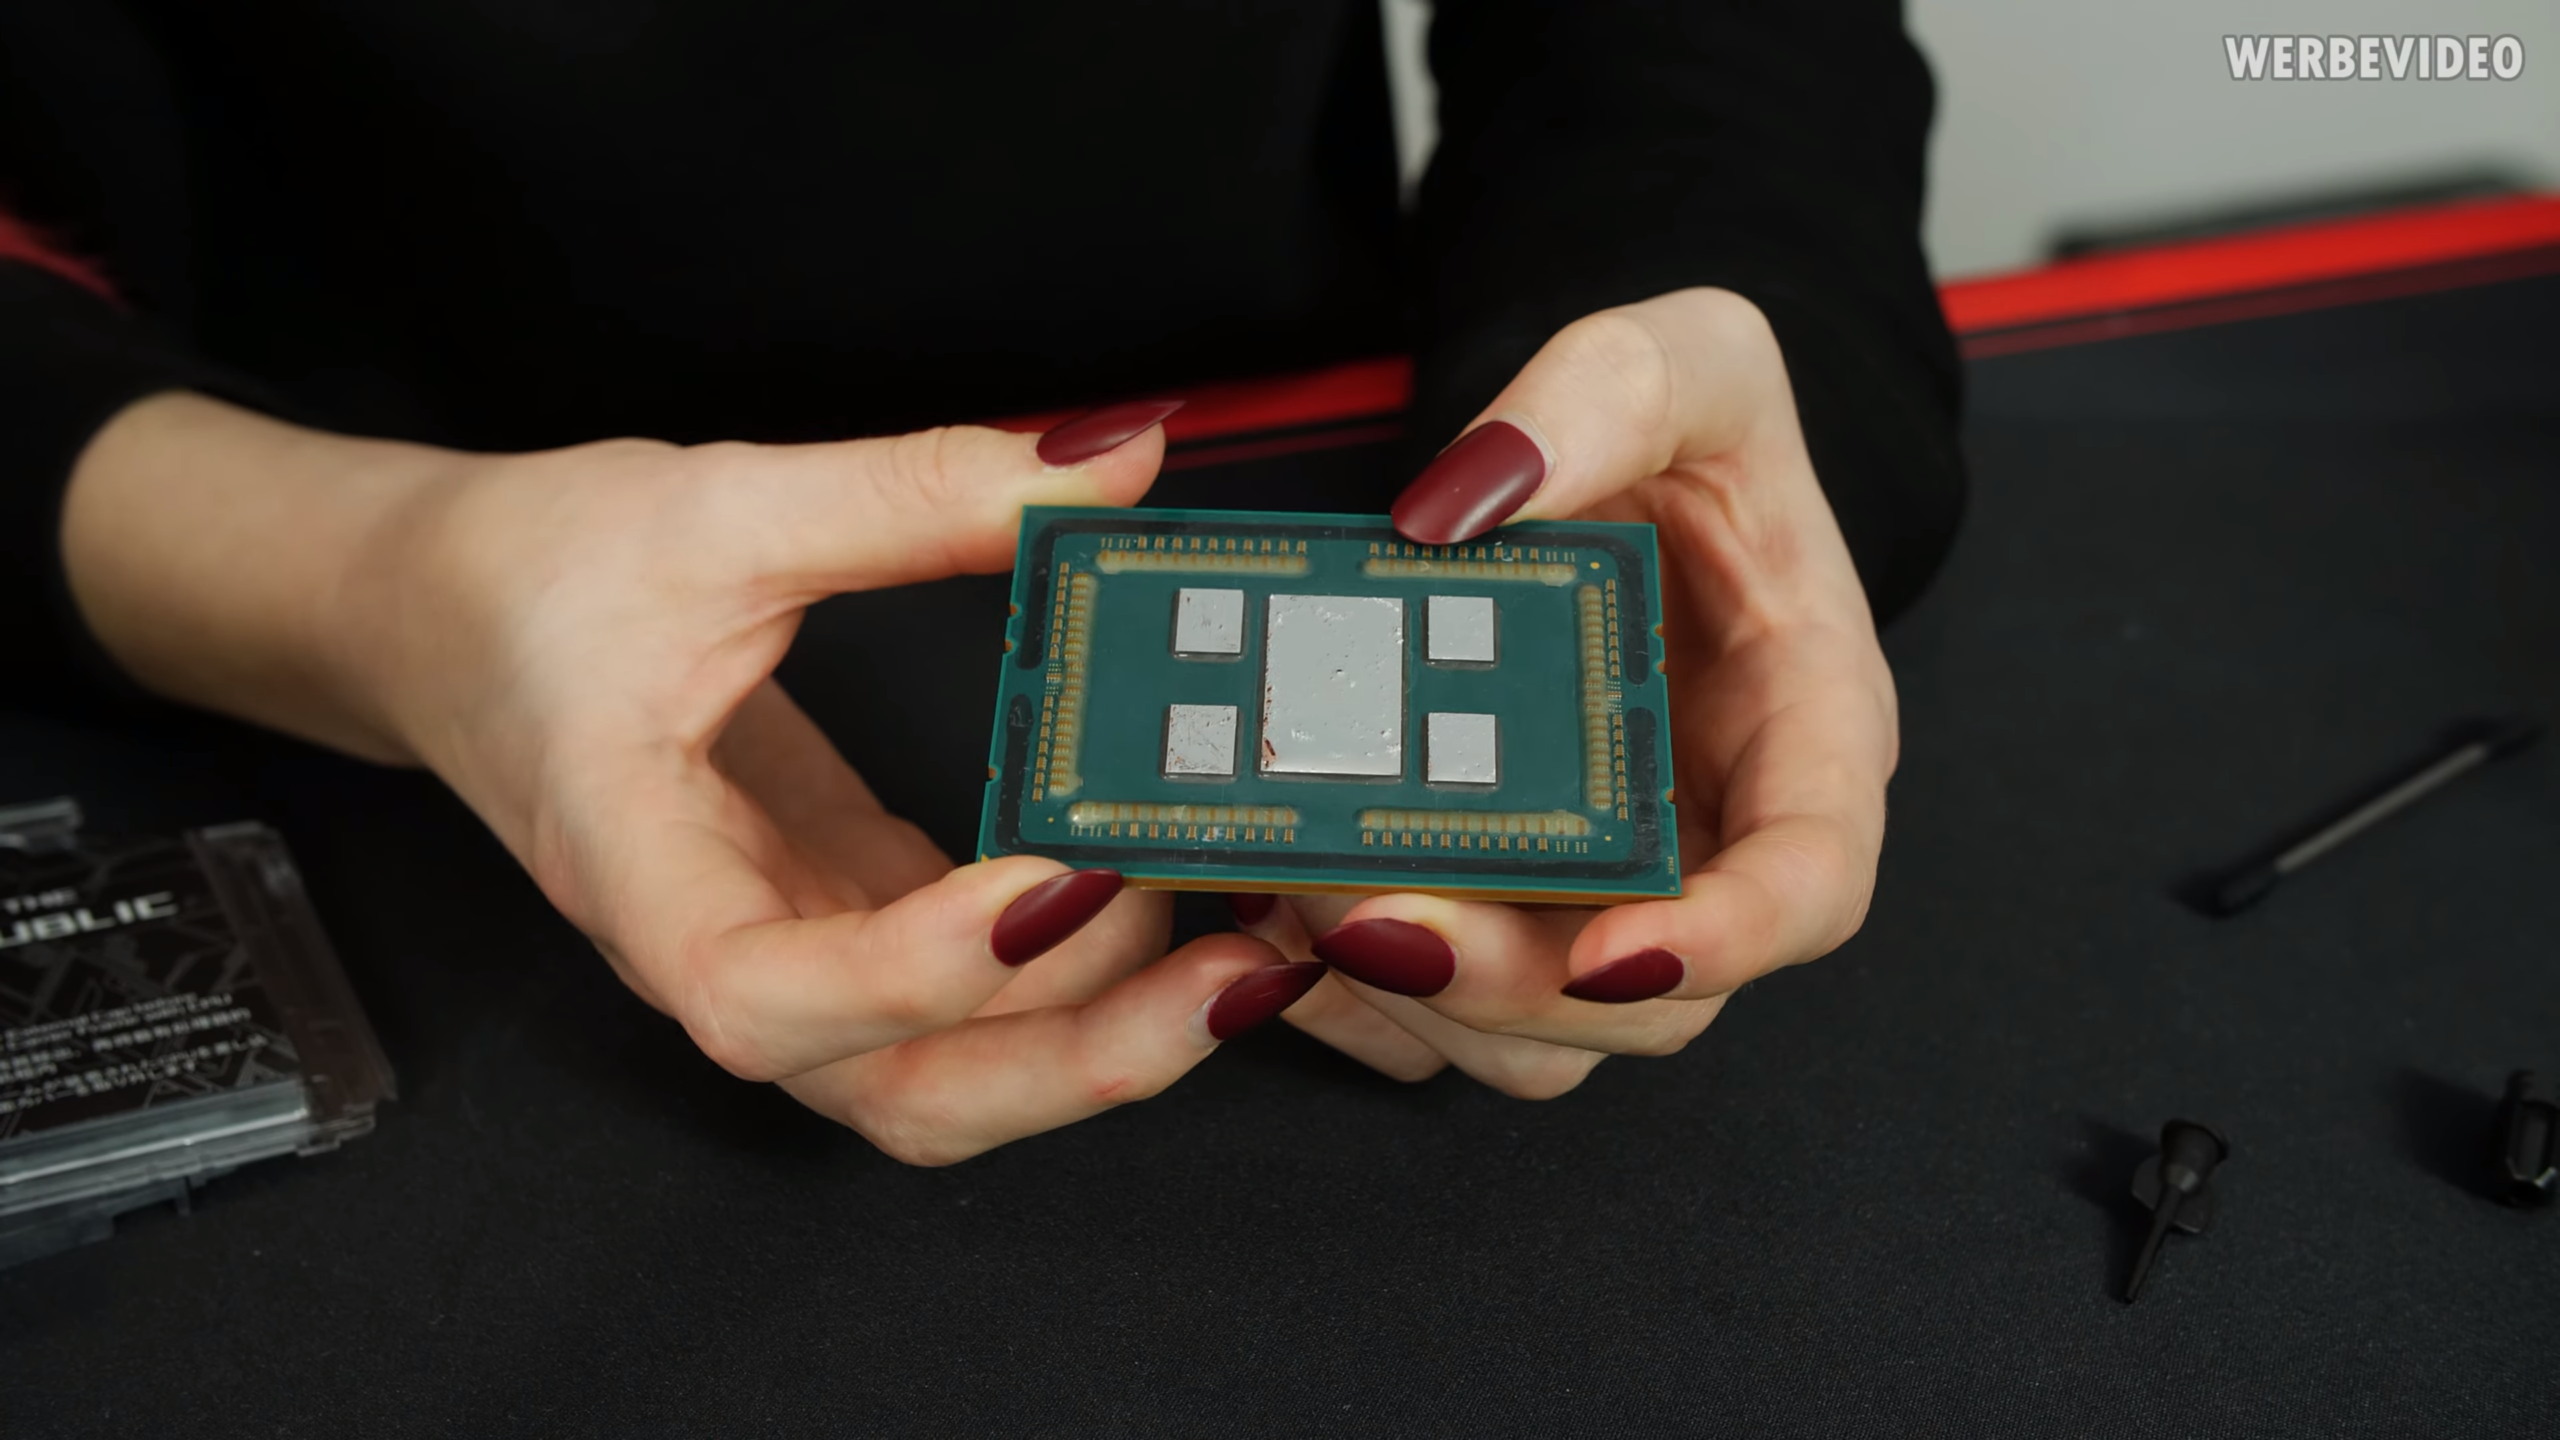 AMD Threadripper pictured